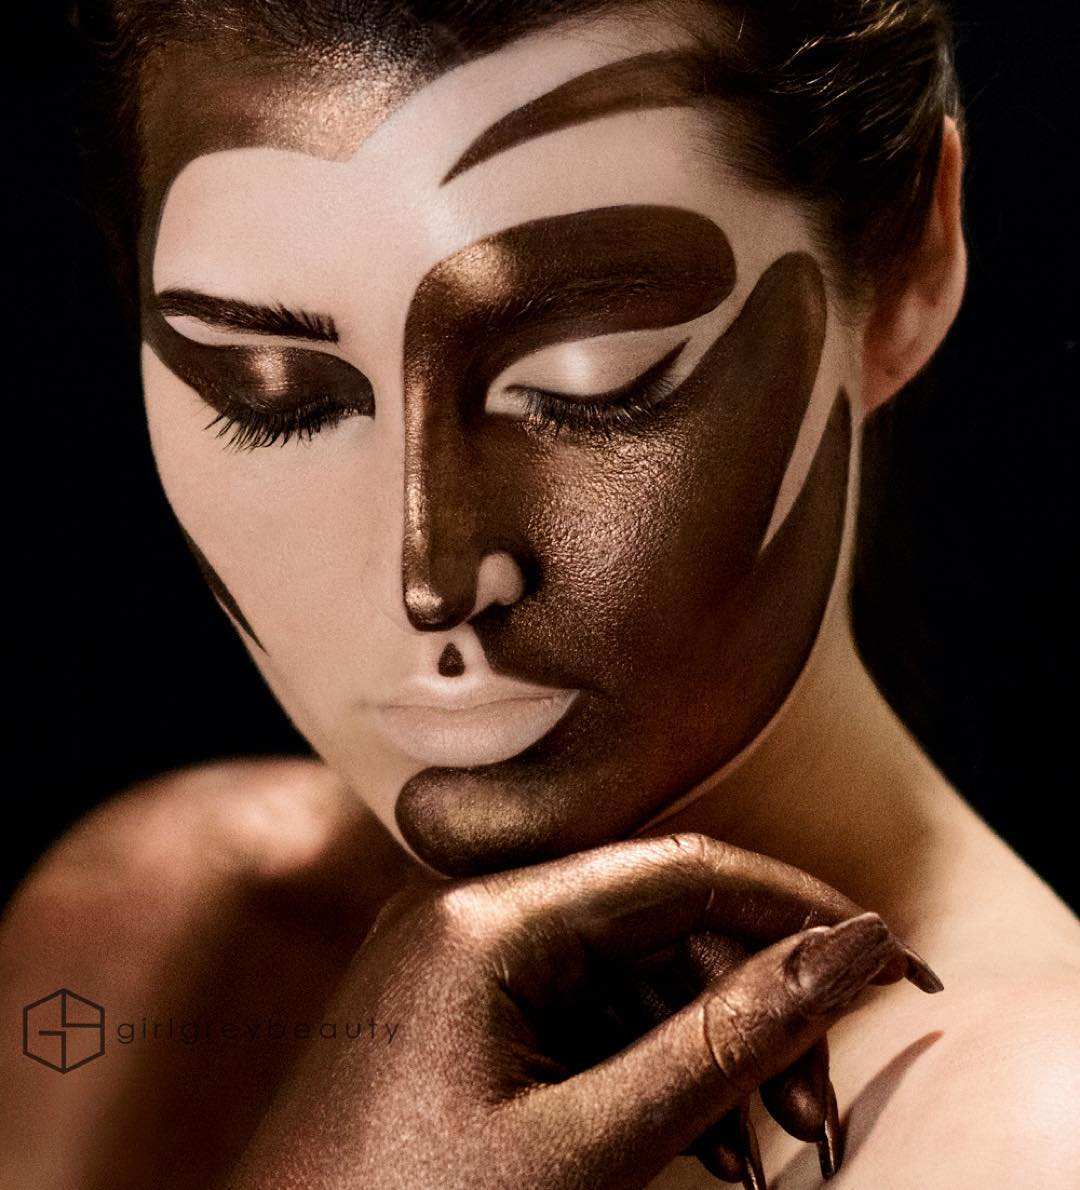 05-Bronzed-Andrea-Reed-Body-Painting-and-Lip-Art-www-designstack-co